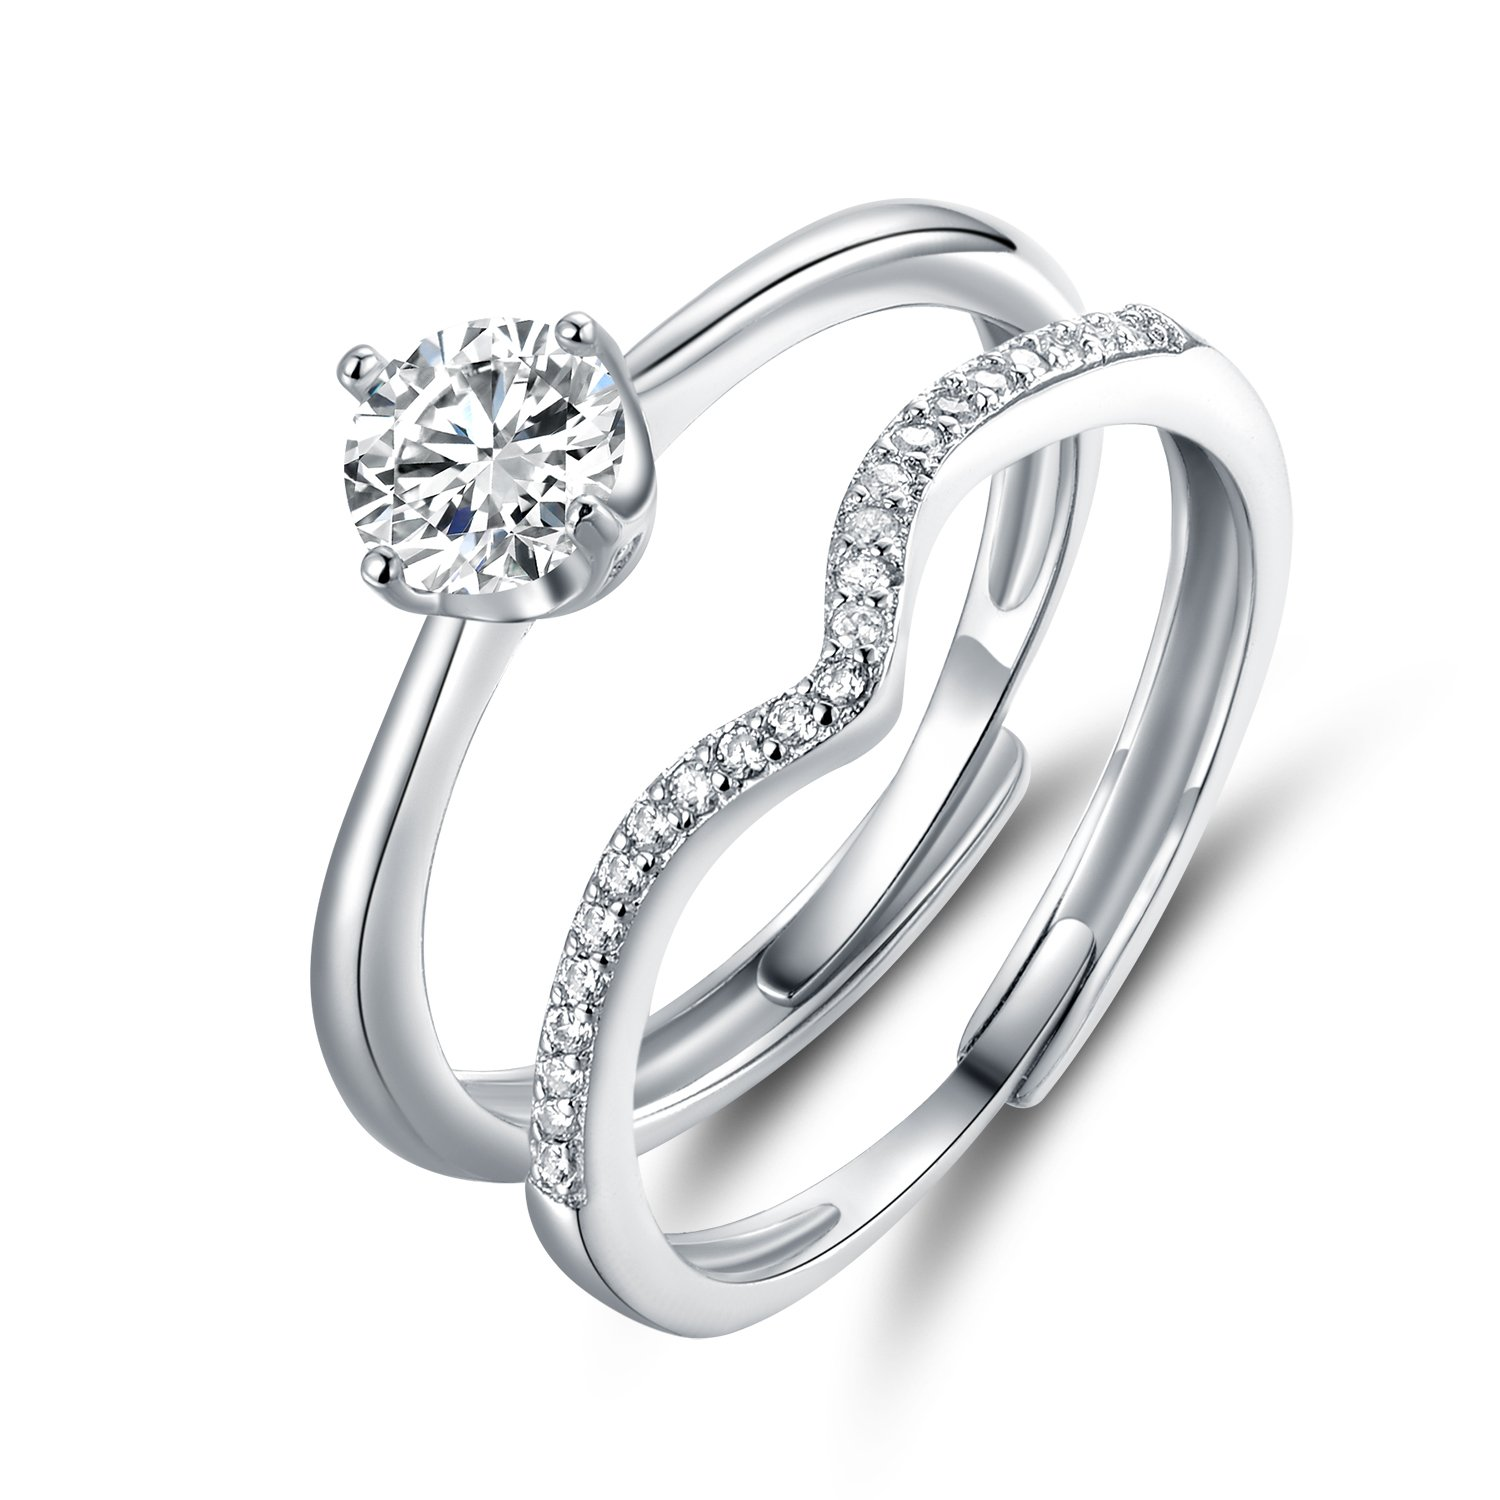 JiangXin Adjustable Size 925 Sterling Silver Ring Set for Women Solitaire Ring and Curved Ring Wrap